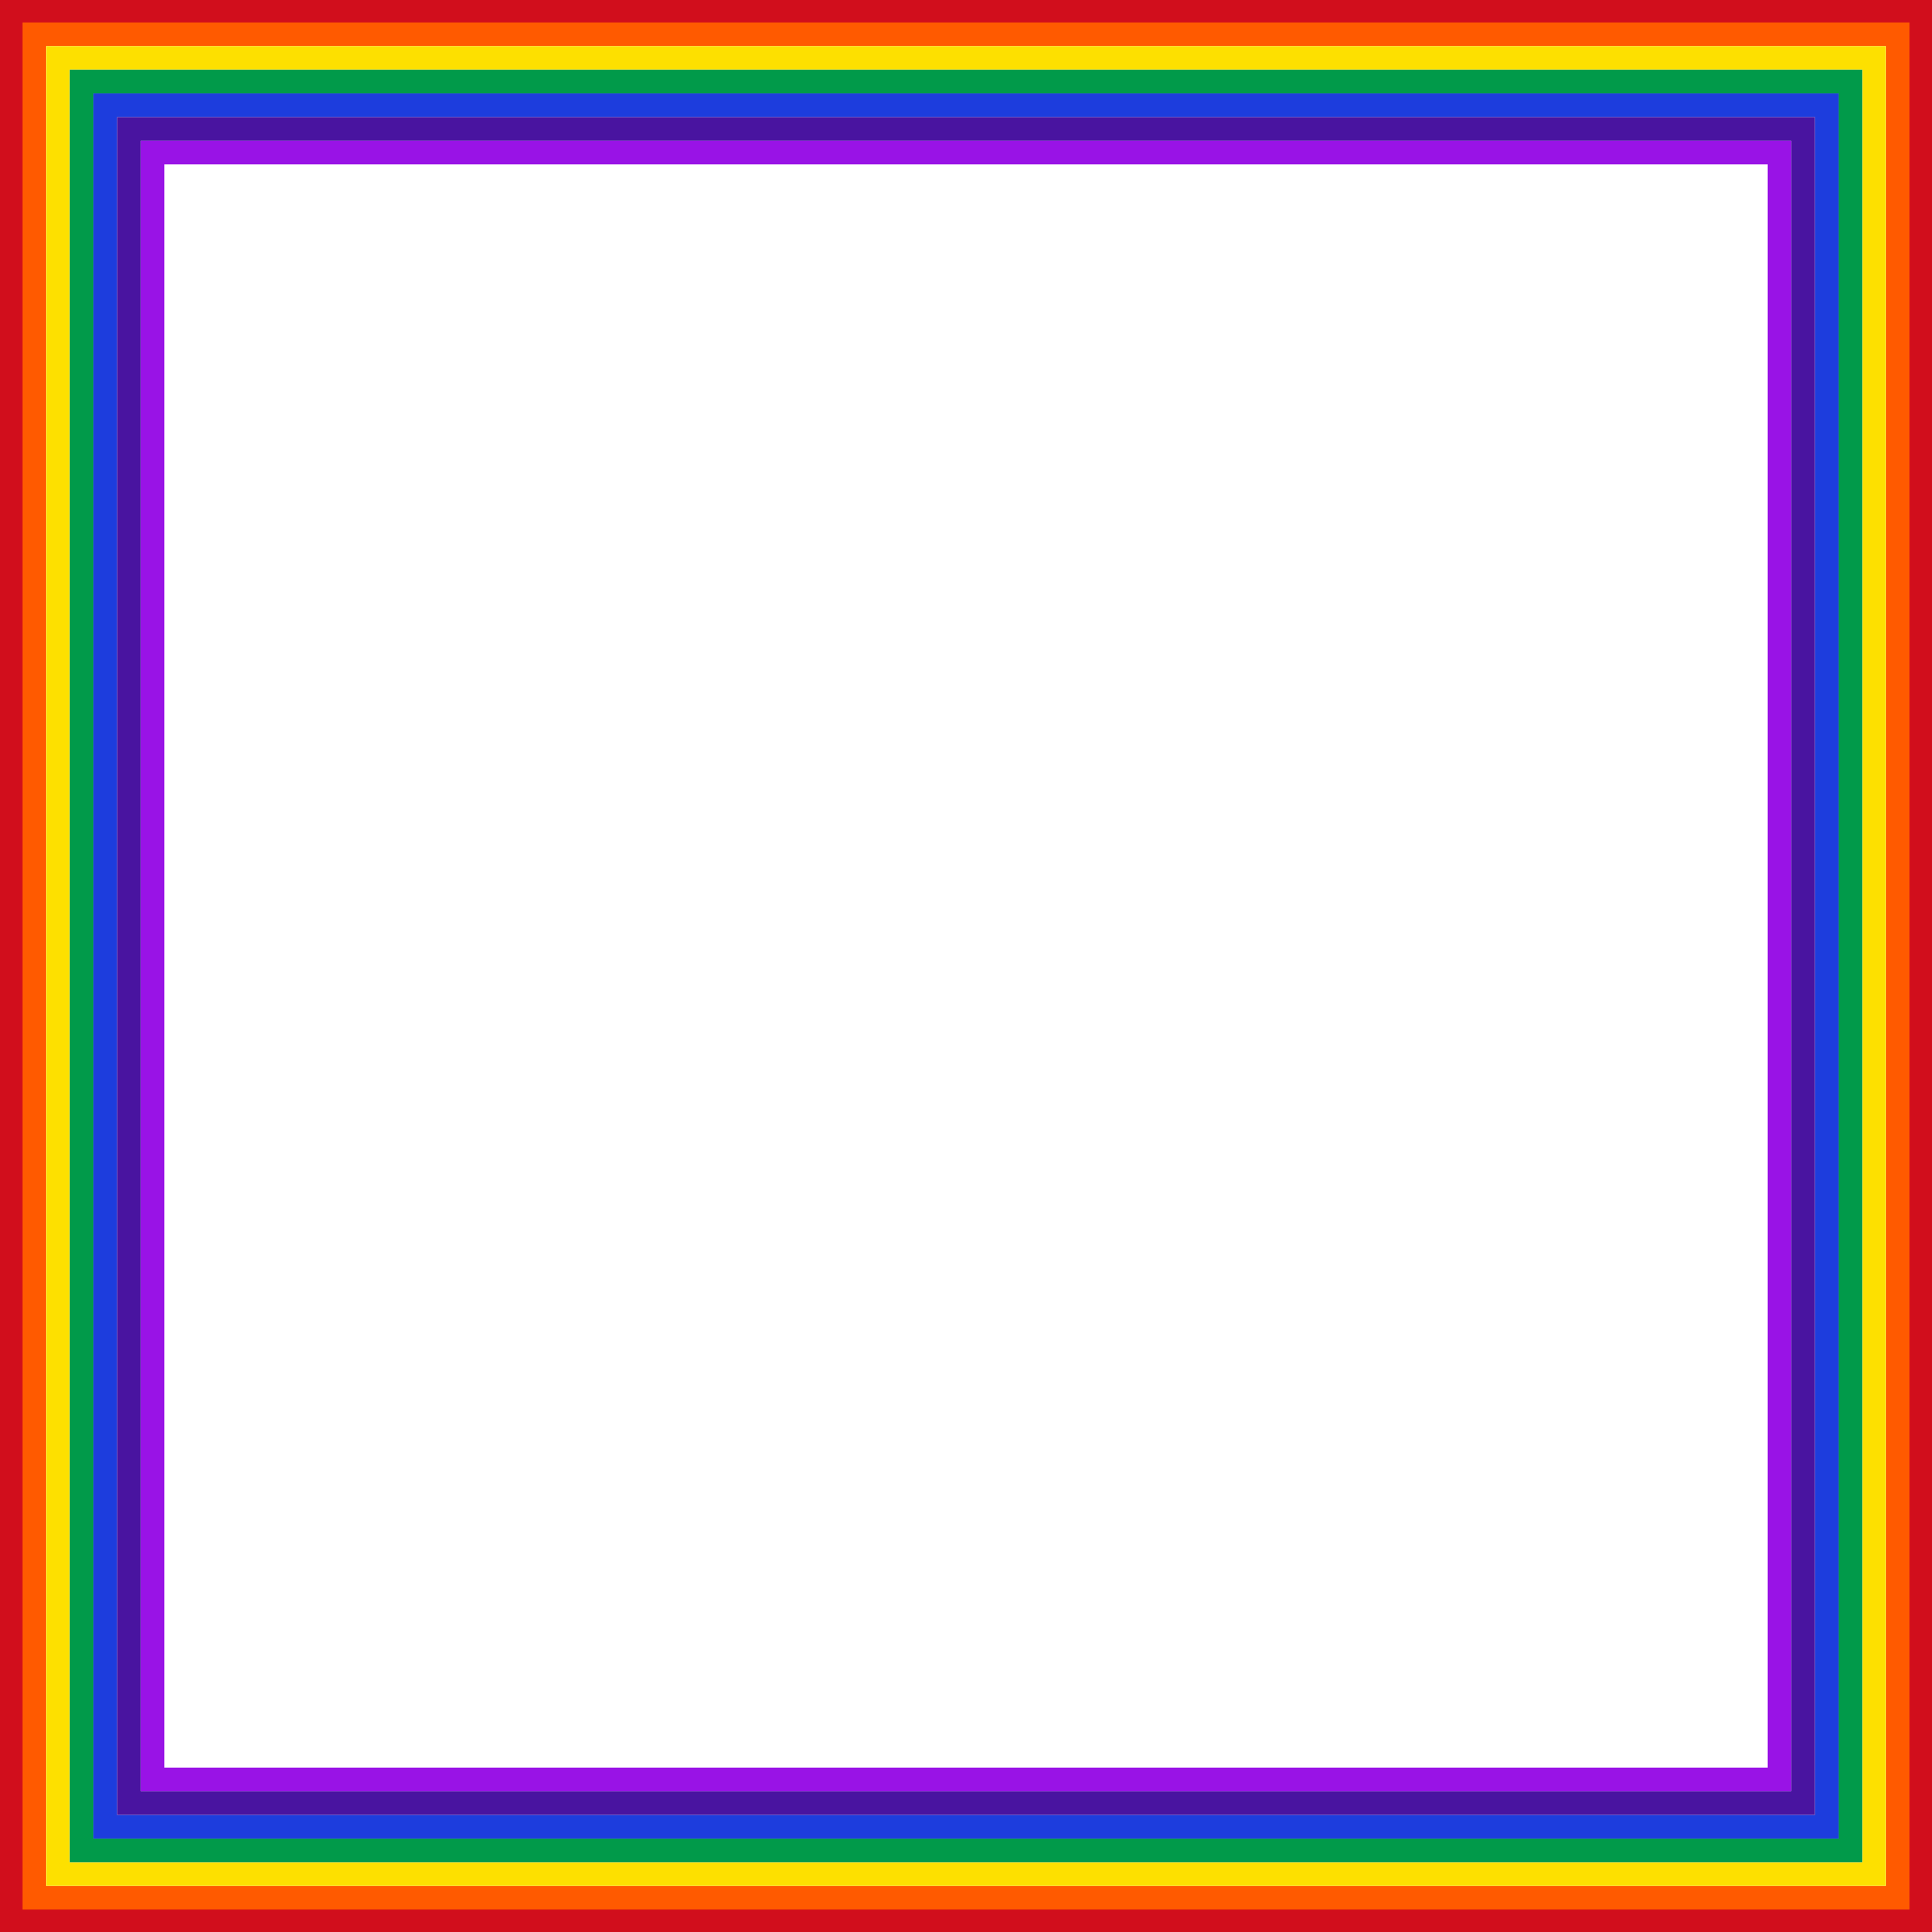 Rainbow Square by GDJ